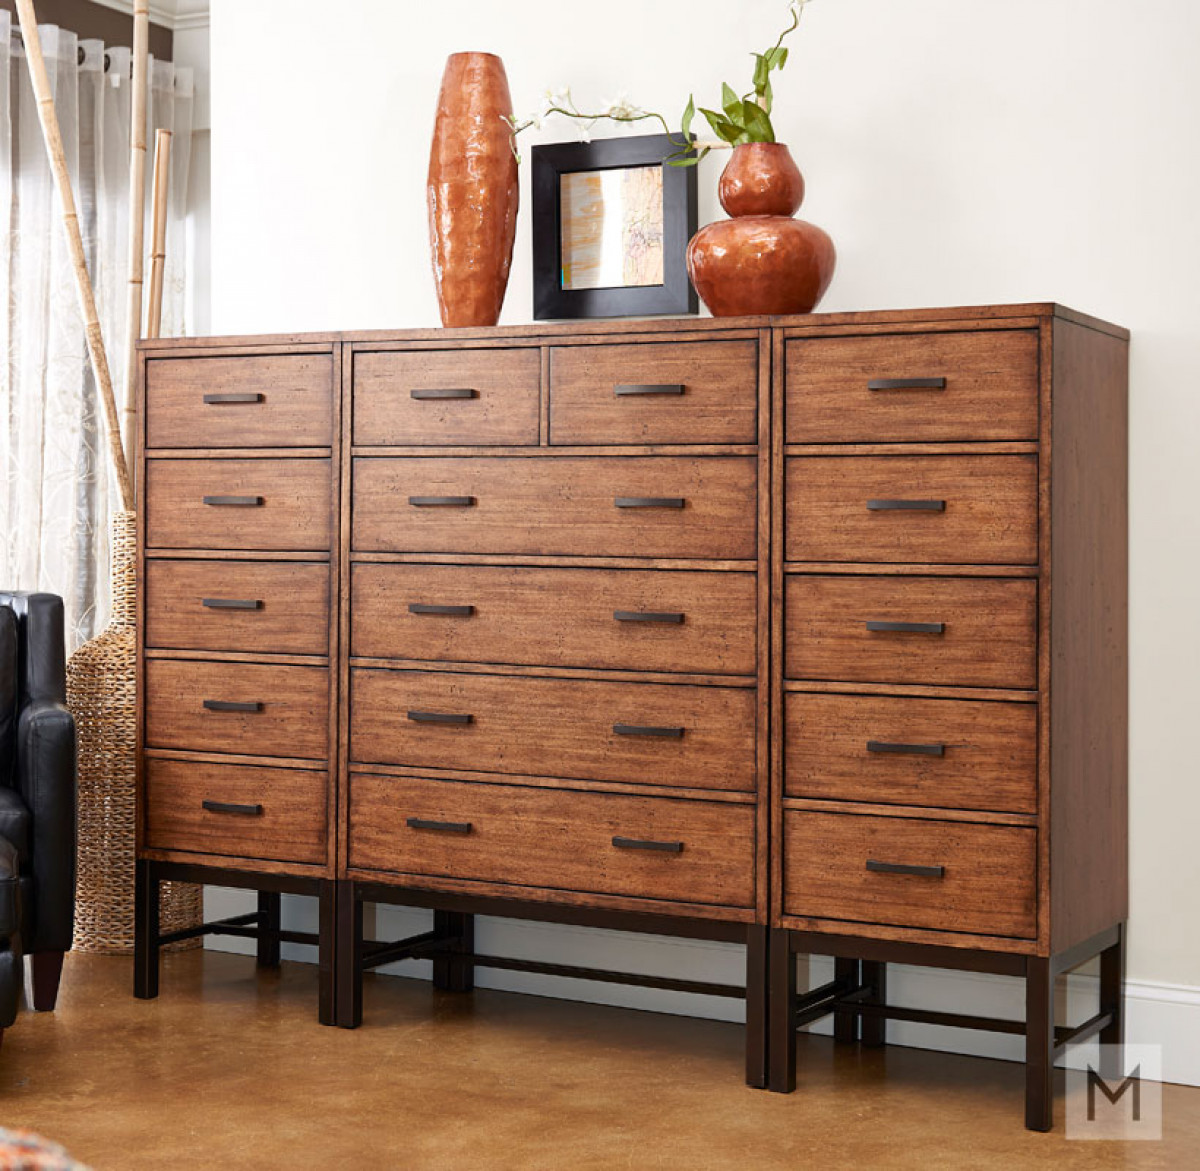 Affinity Six Drawer Chest in Mango with a Rustic Finish